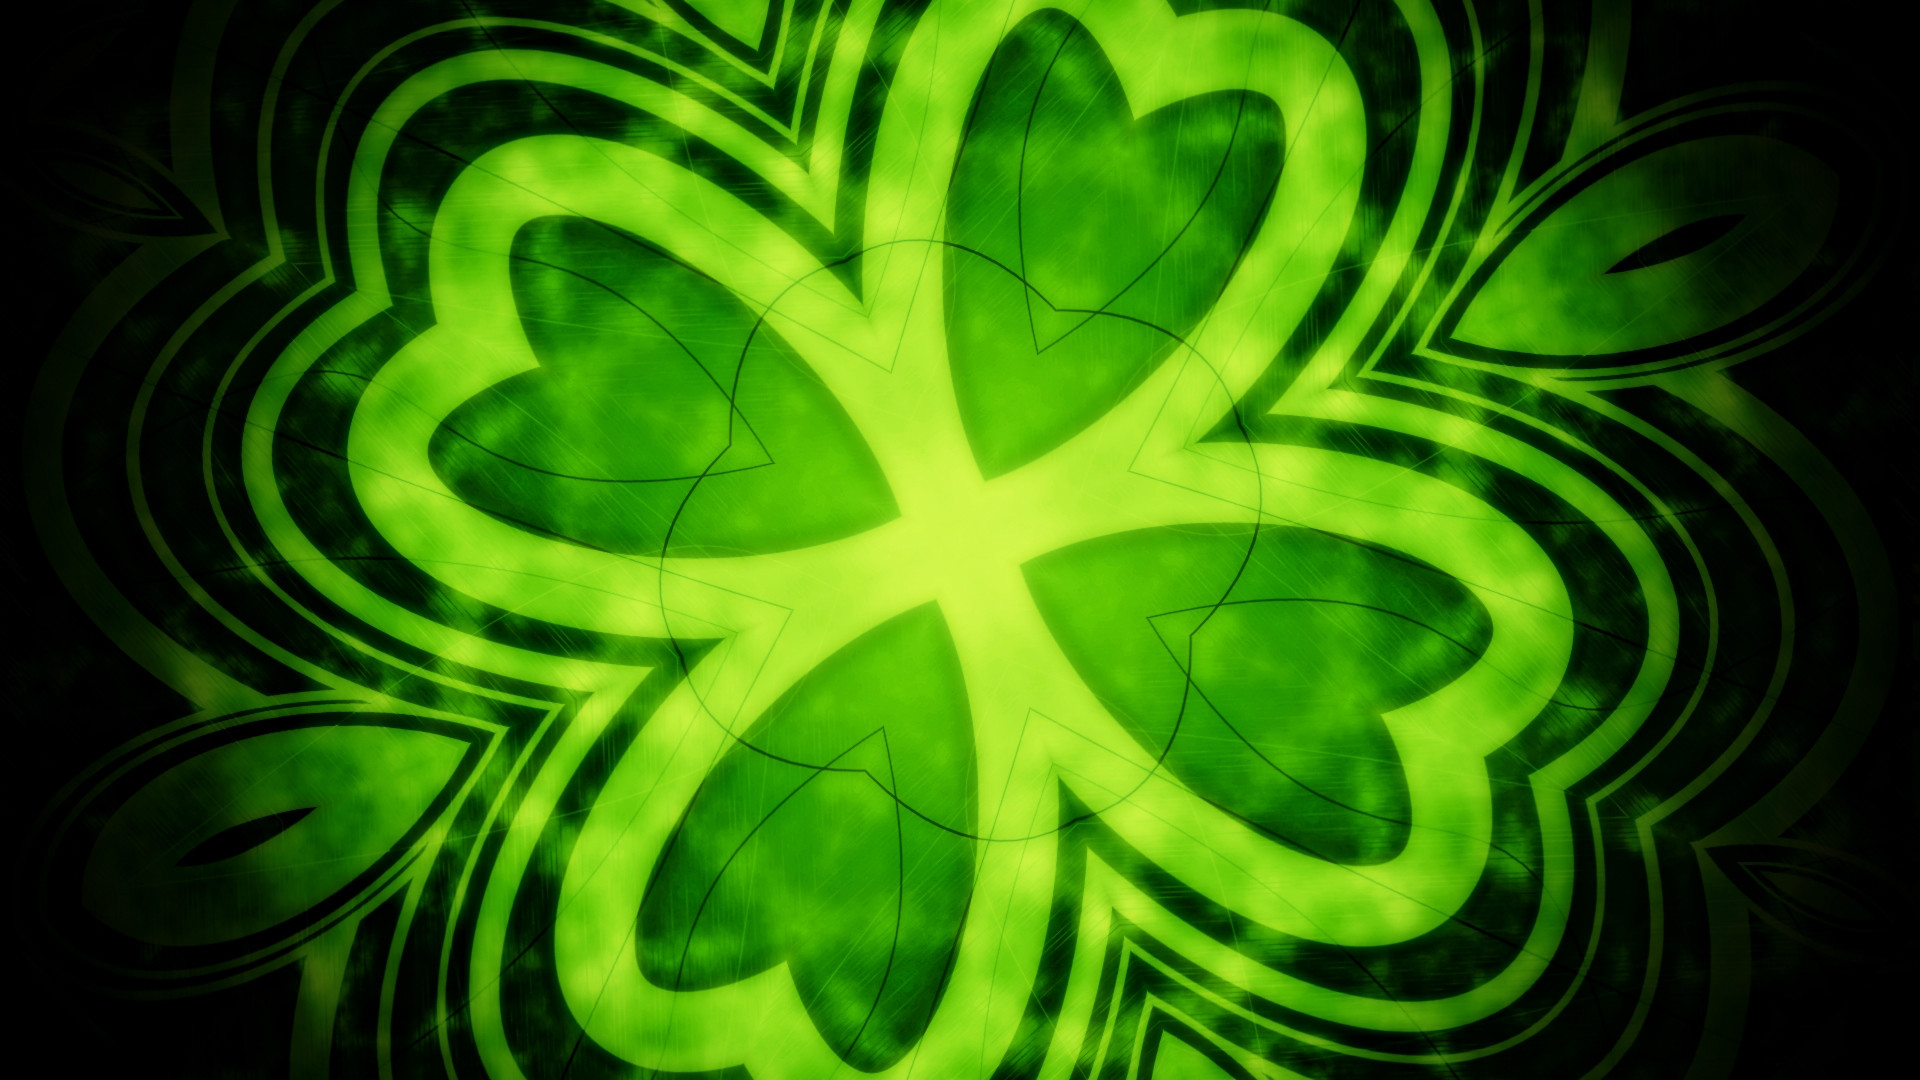 1920x1080 15 lucky Android wallpapers for St. Patricks Day | AndroidGuys